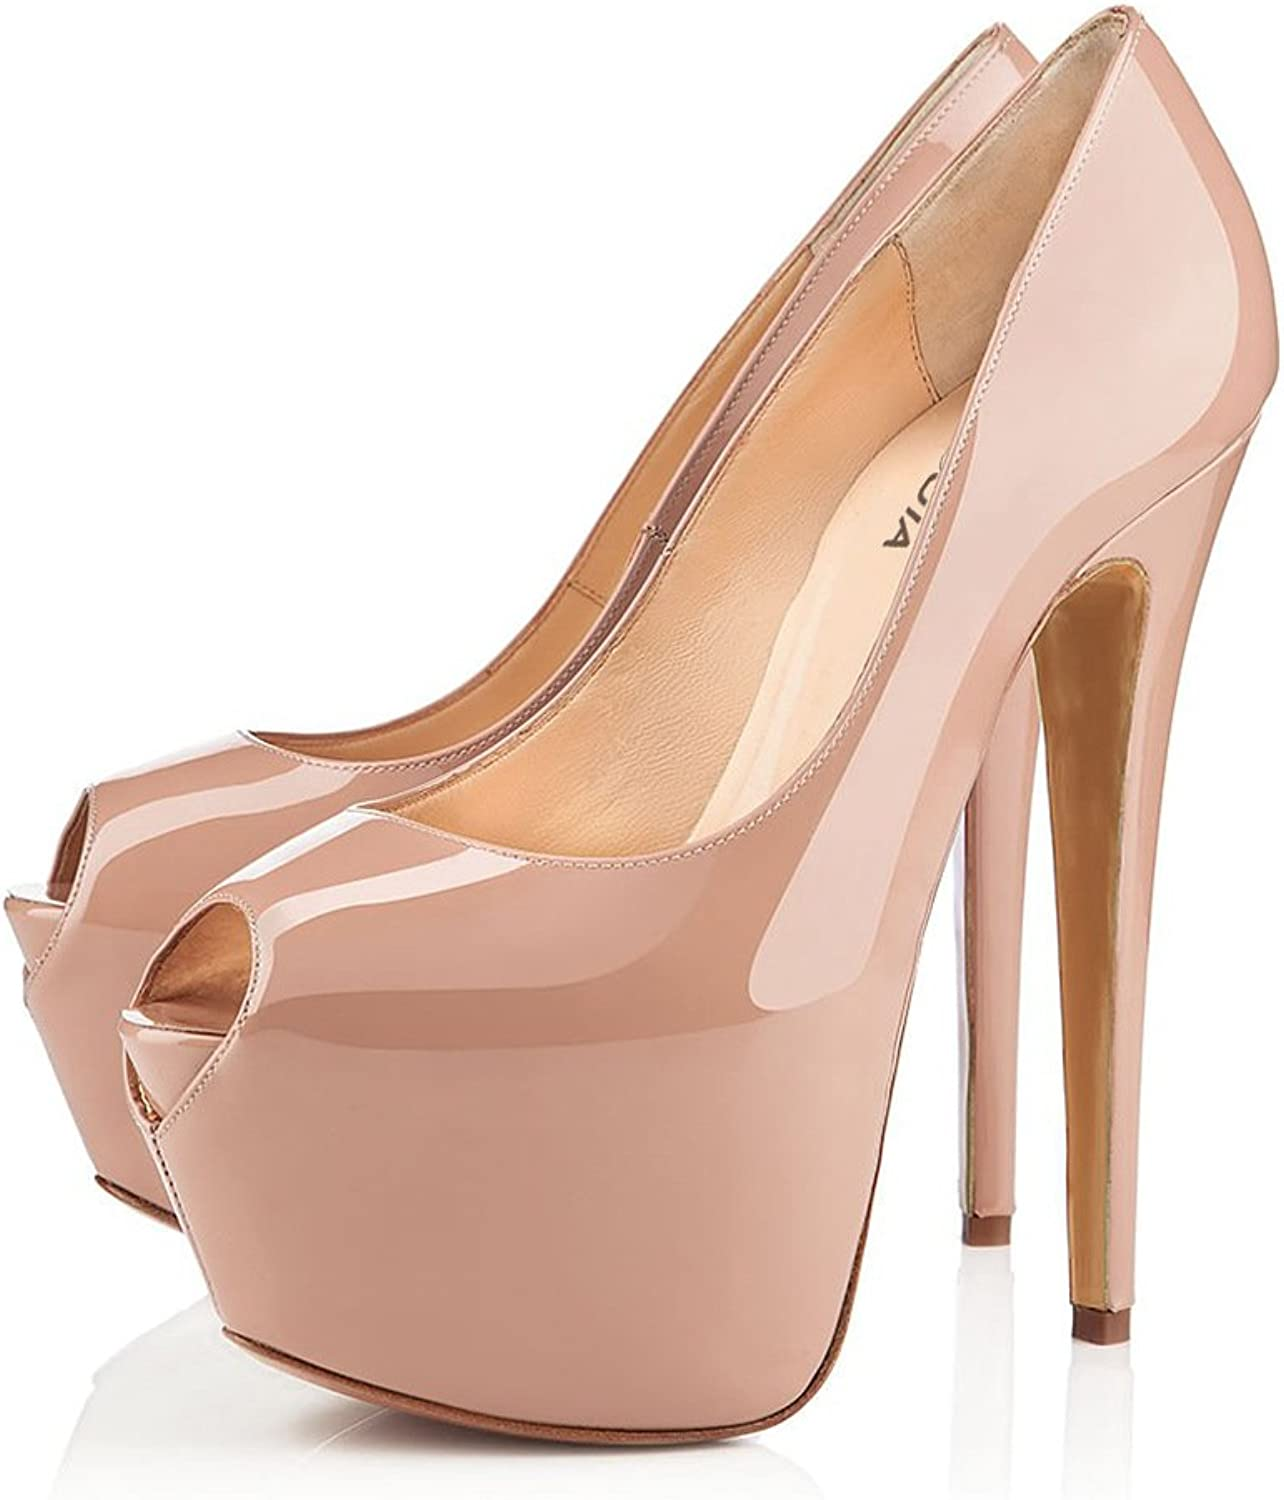 HUAN Women's Wedding shoes Heels Peep Toe Sandals Wedding Dress for Party & Evening Peach Black, Nude